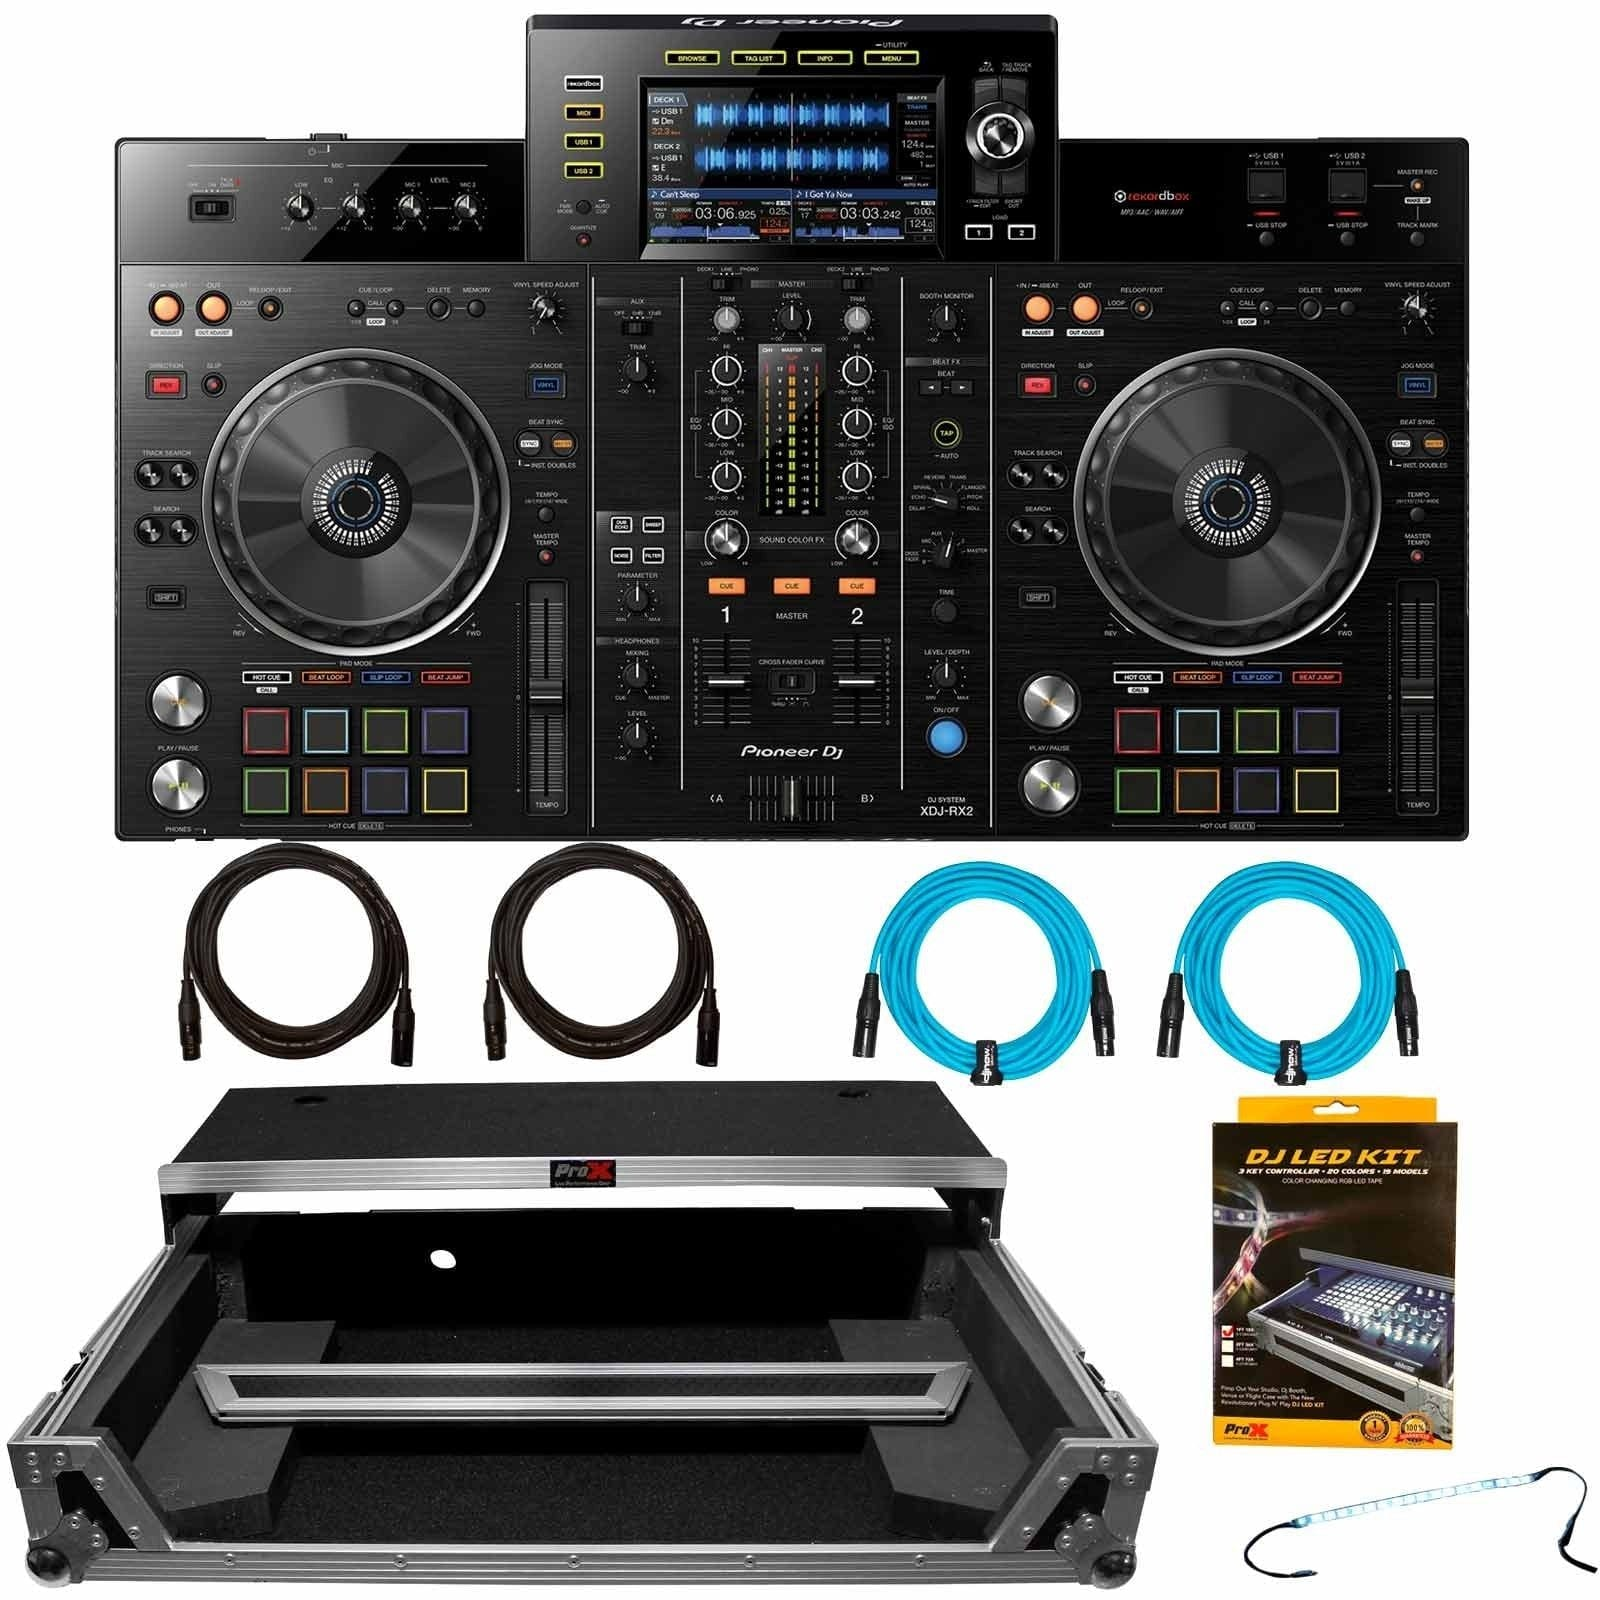 pioneer-dj-xdj-rx2-2-channel-professional-rekordbox-dj-system-with-chrome-silver-flight-case-package-e41